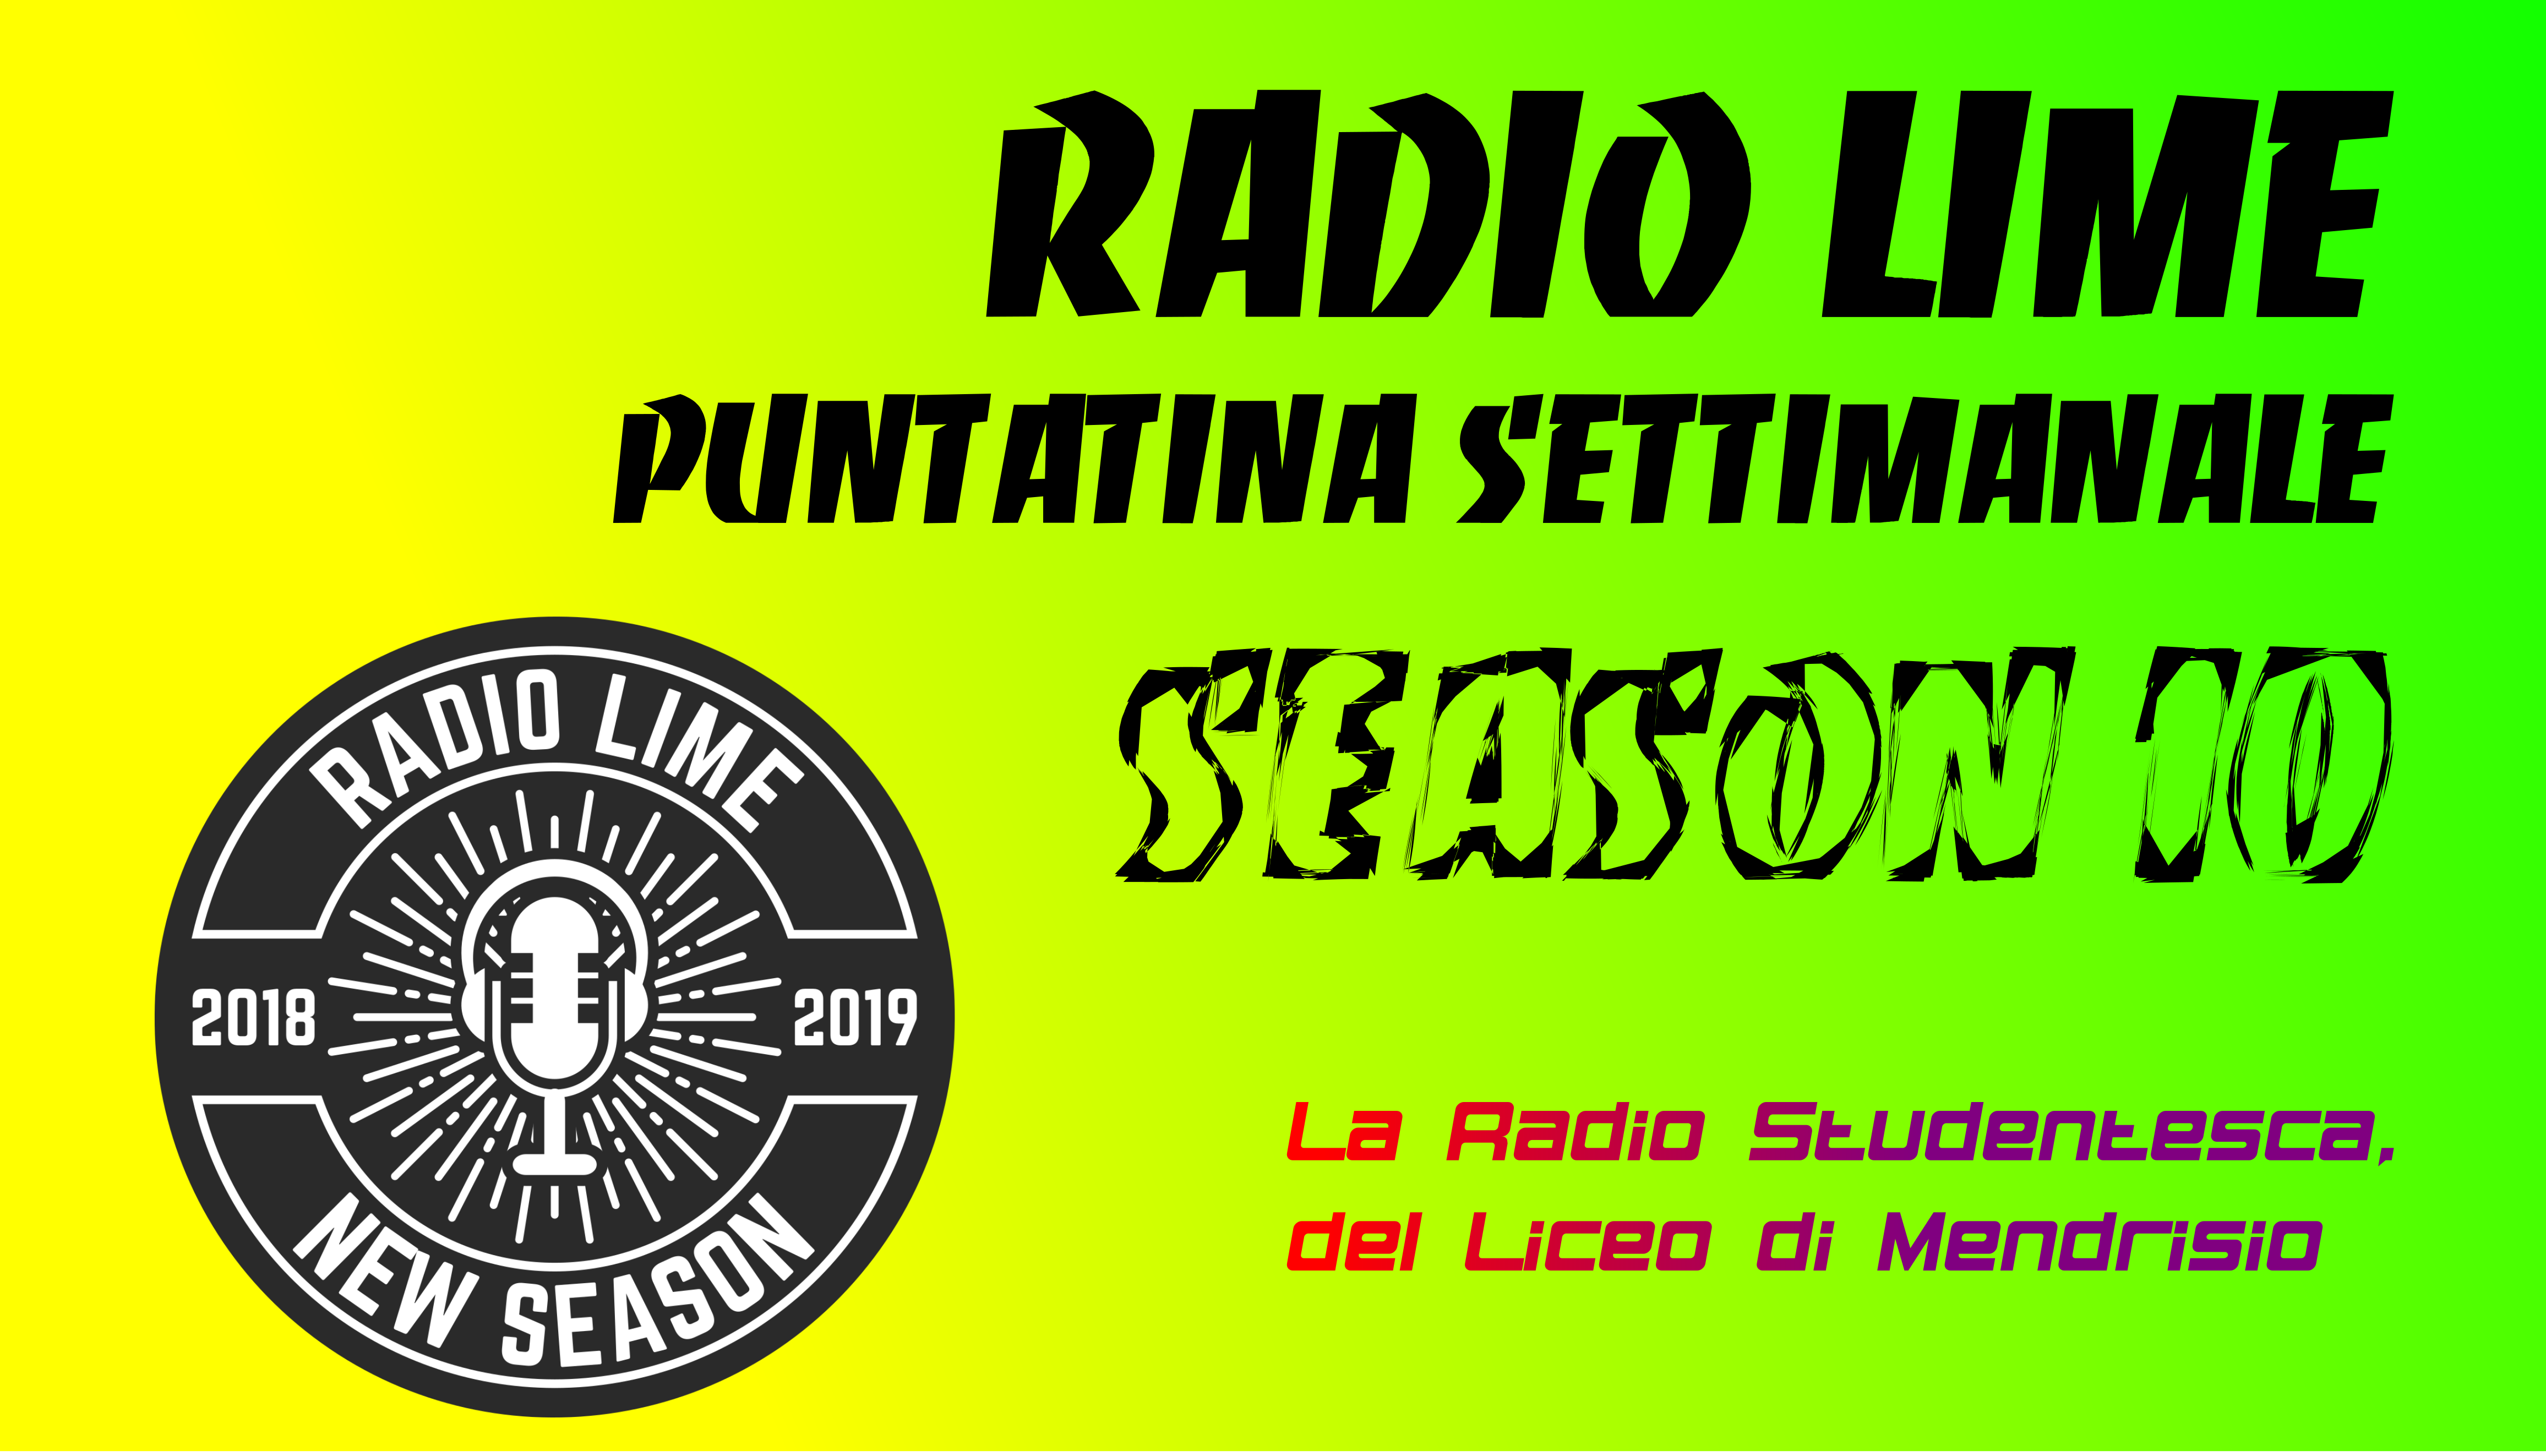 Laptop Radioing Session LiMe - 03/02/2019